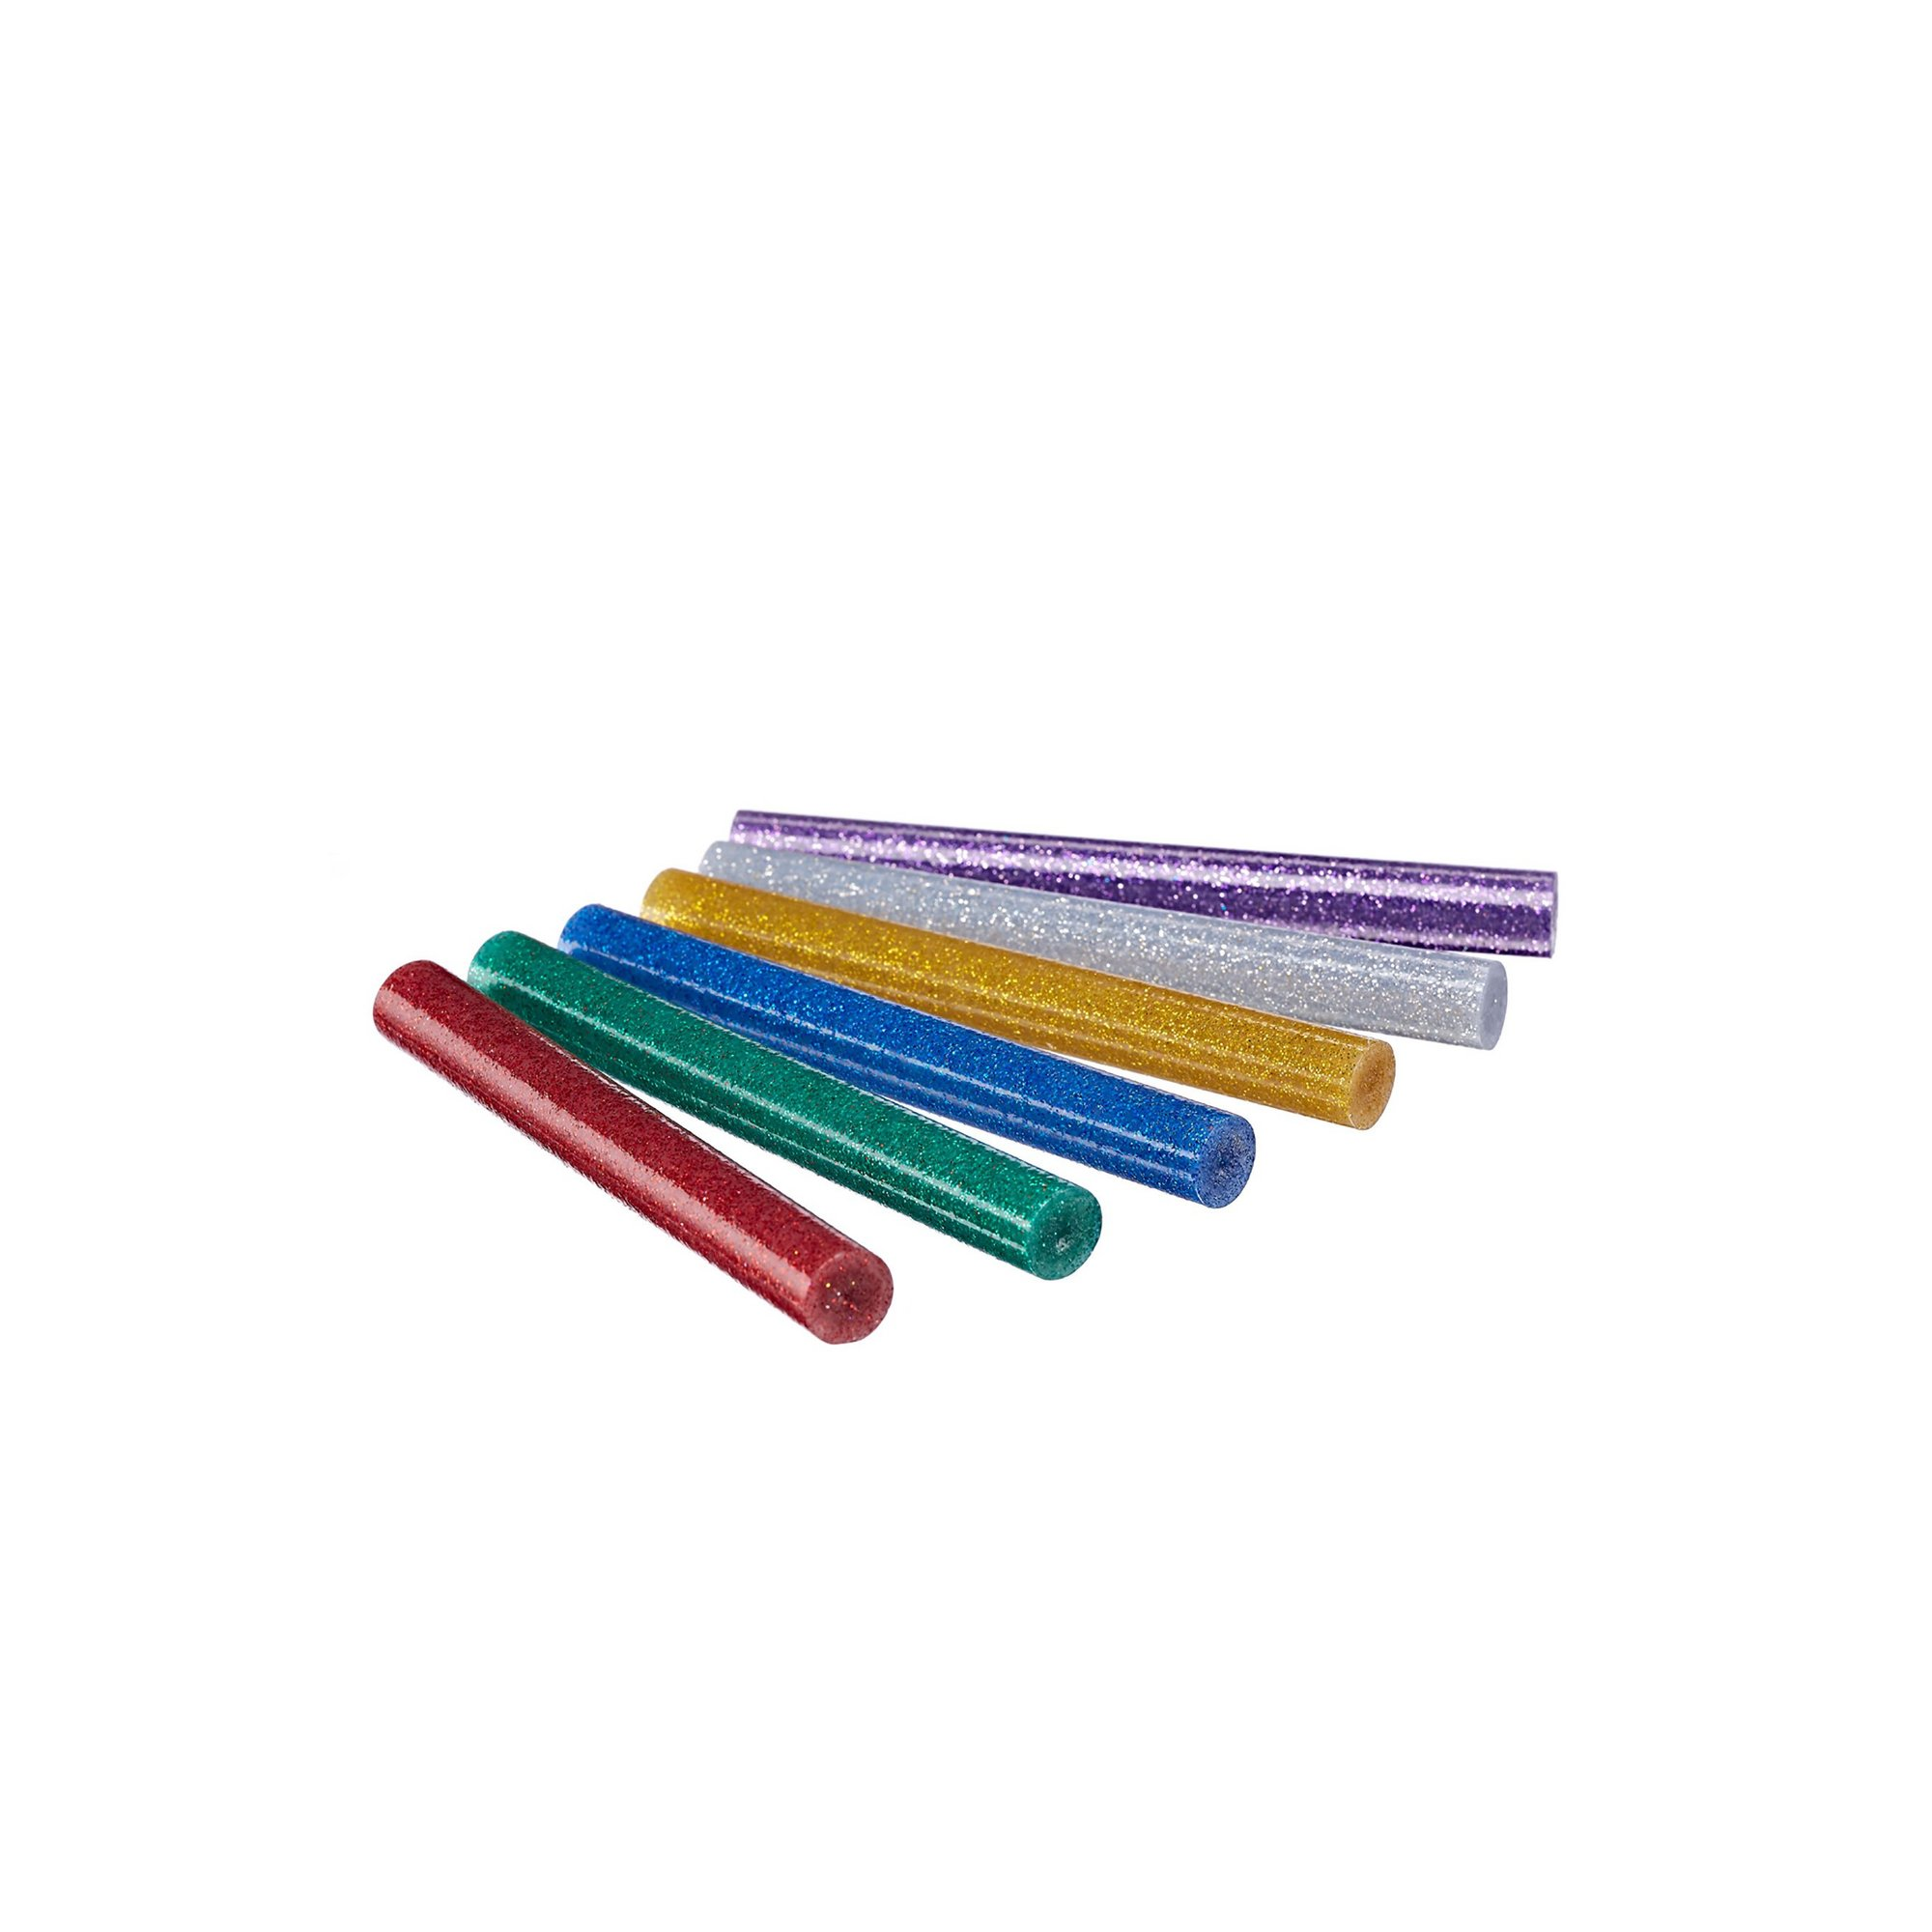 Image of 30 Piece Glitter Hot Melt Glue Gun Sticks